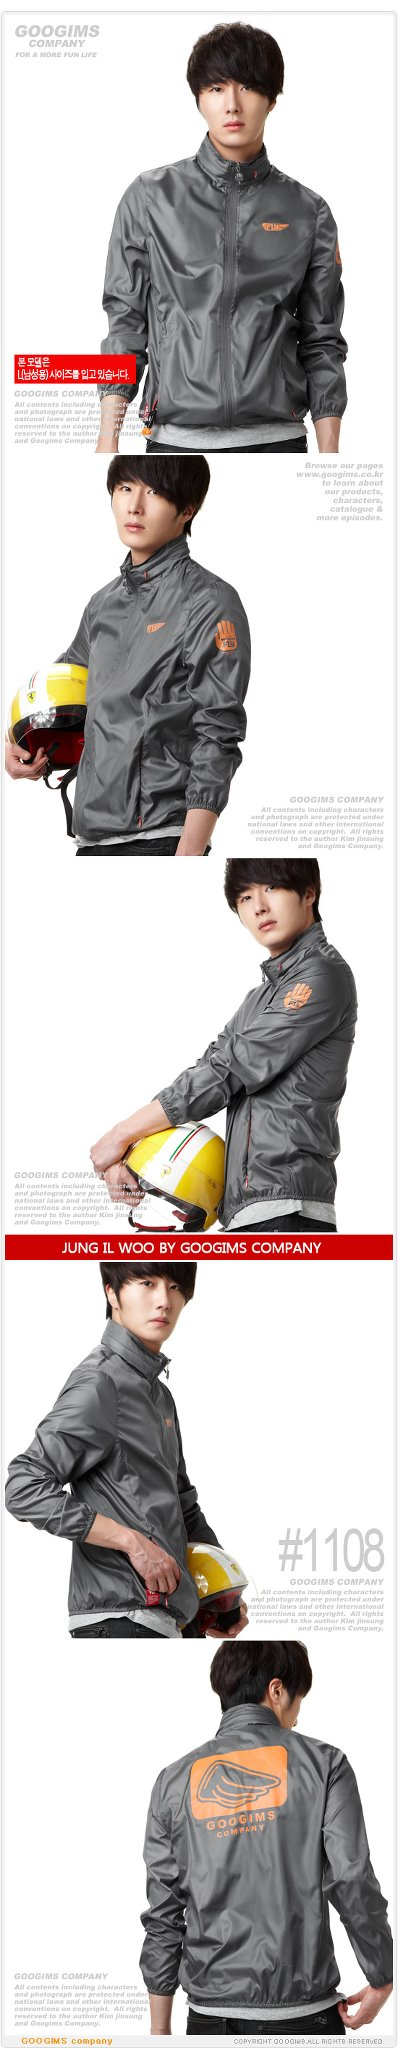 2011 10 Jung II-woo for Googims. Part 100021